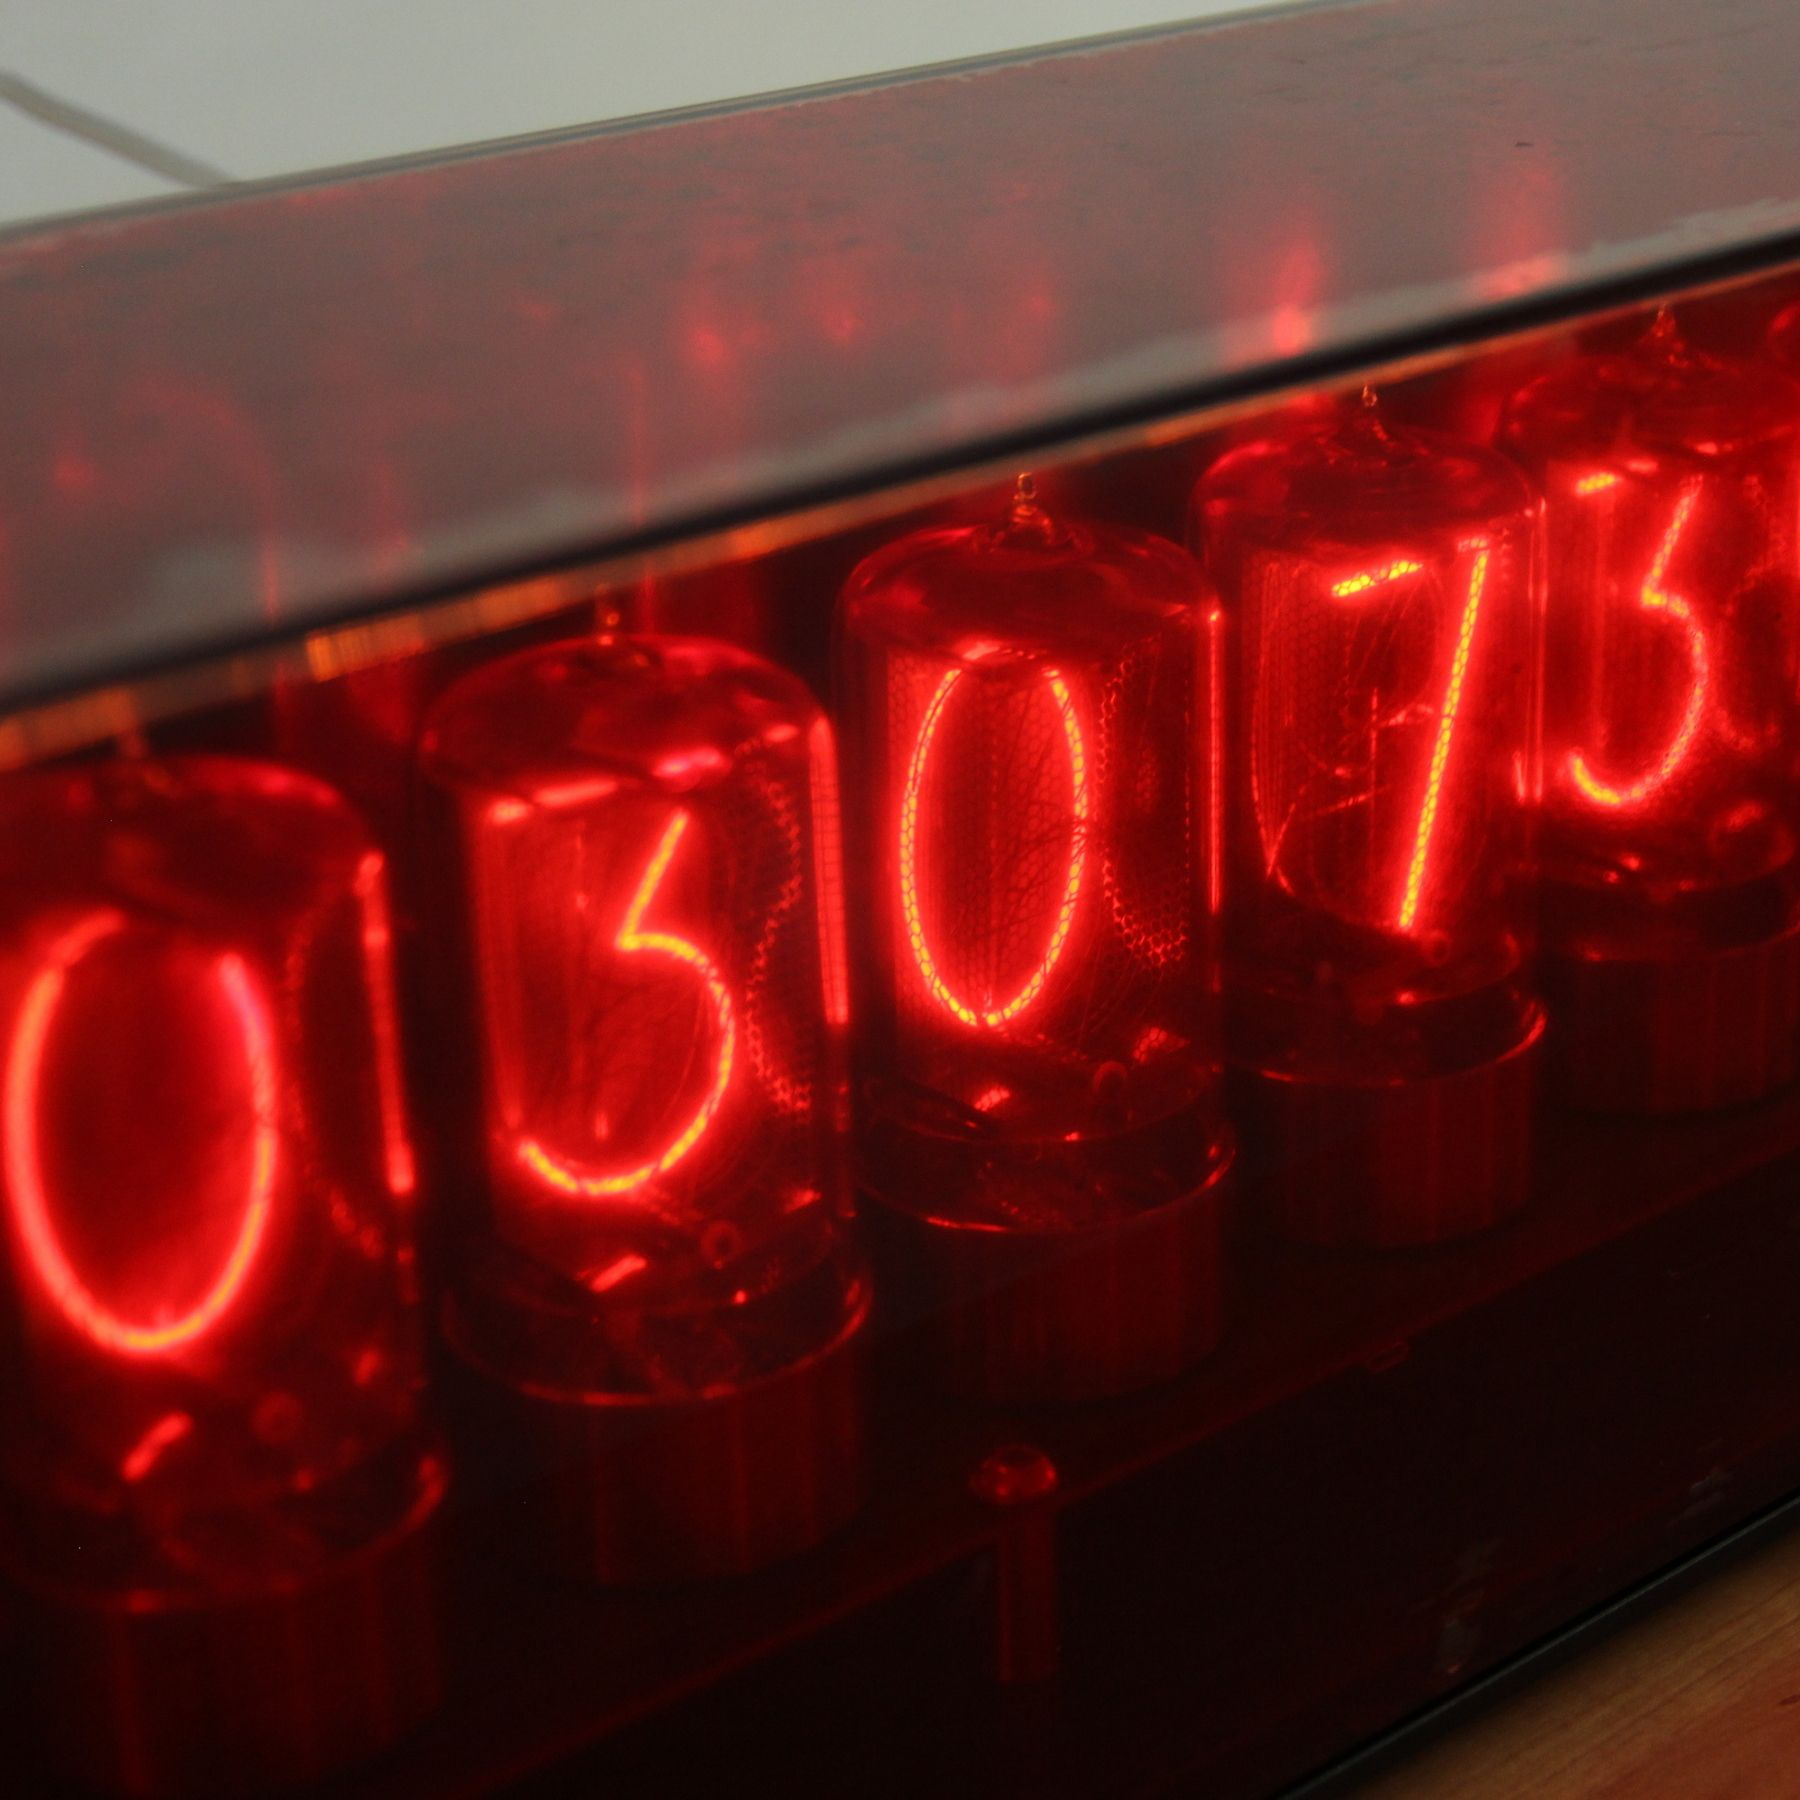 The red filter on nixie tubes is definitely not a